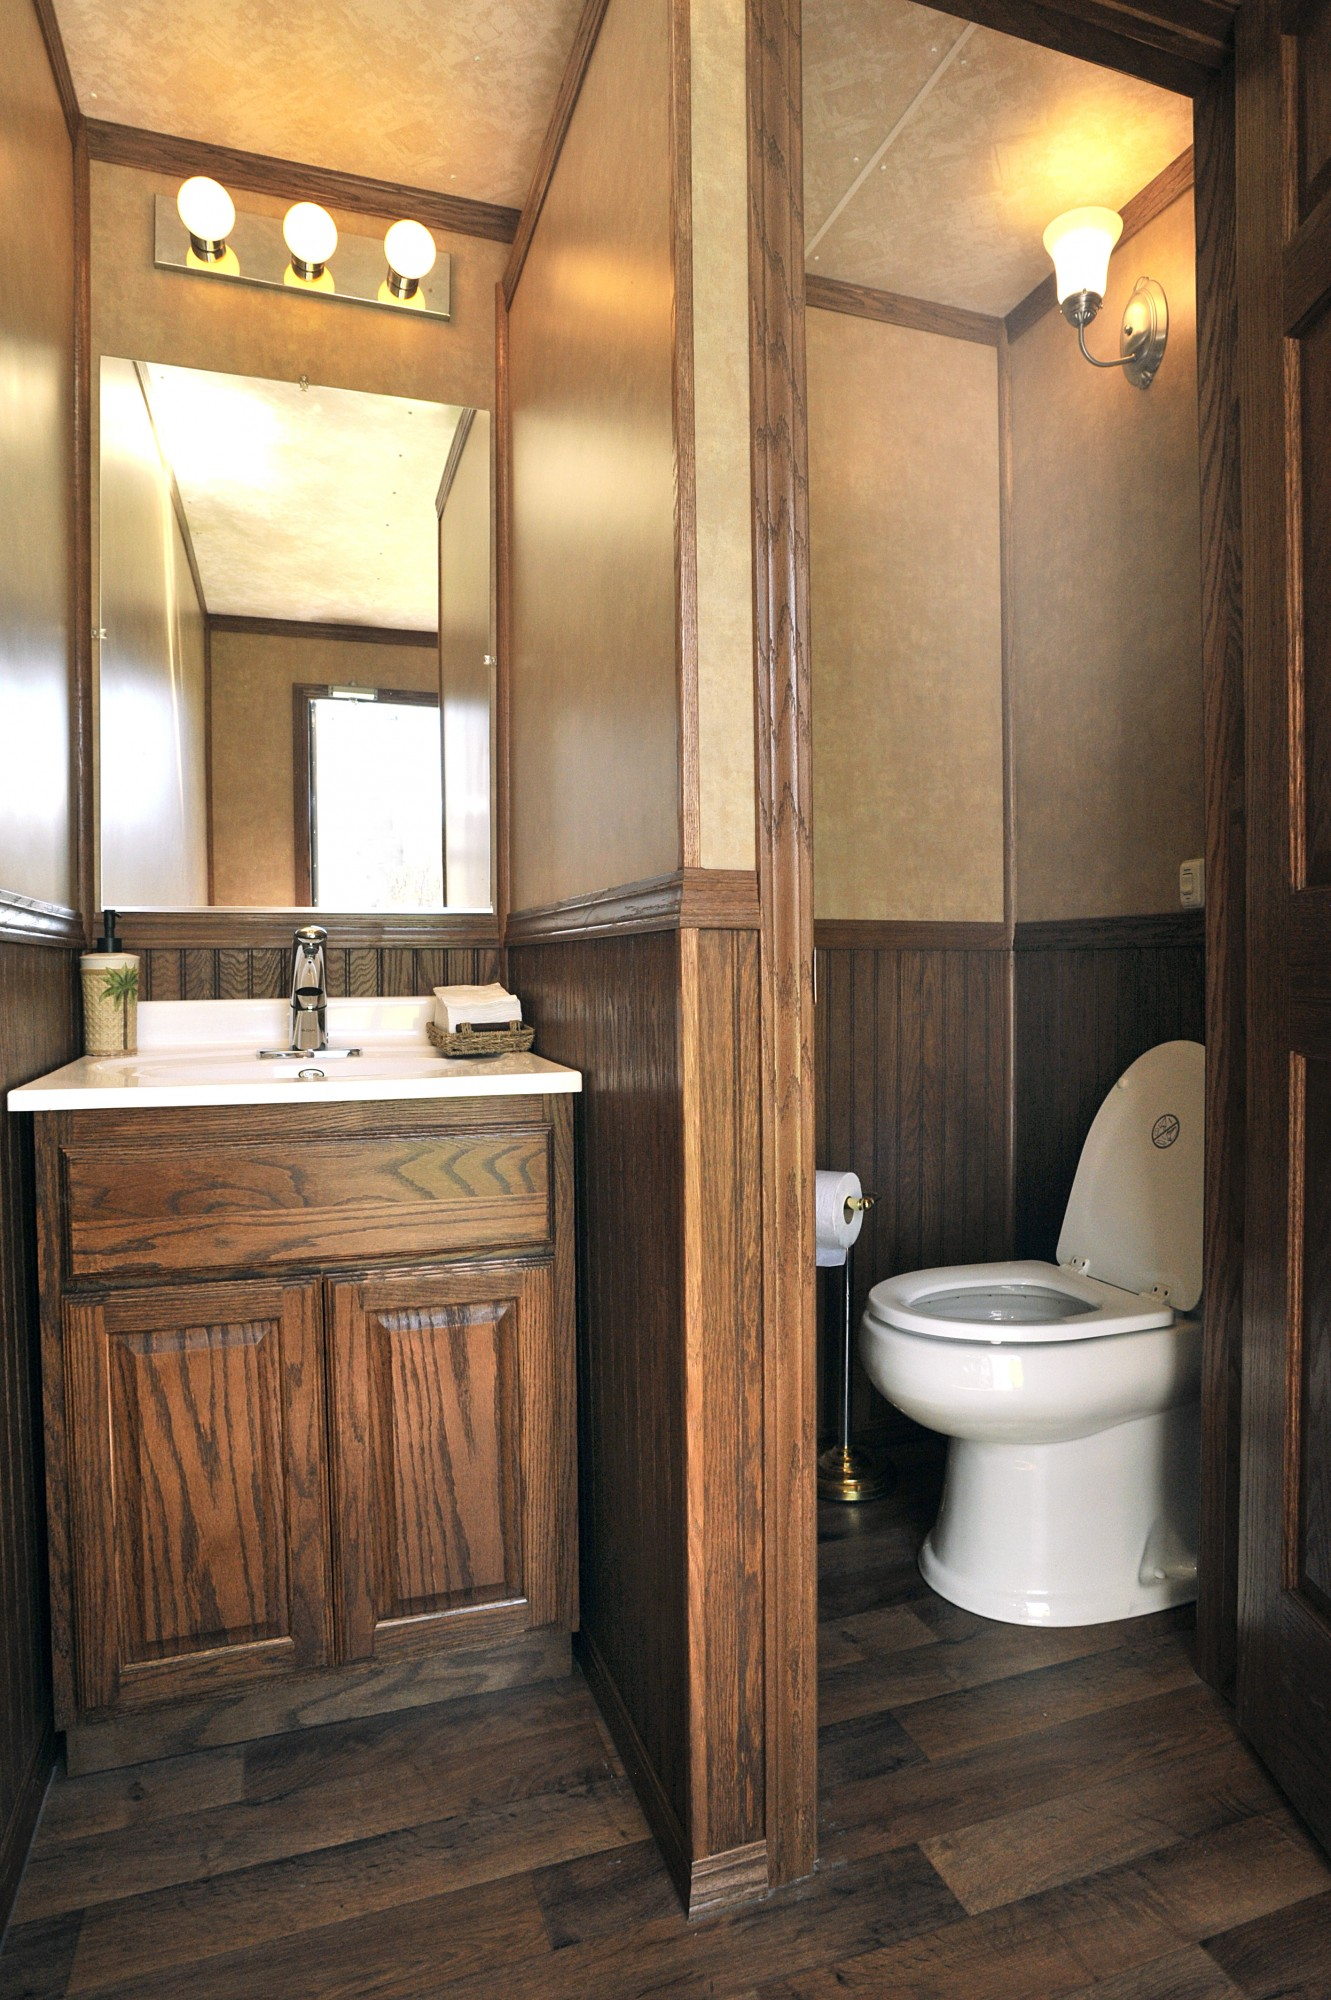 toilet with option carrier portfolio frame trailers bathroom portable